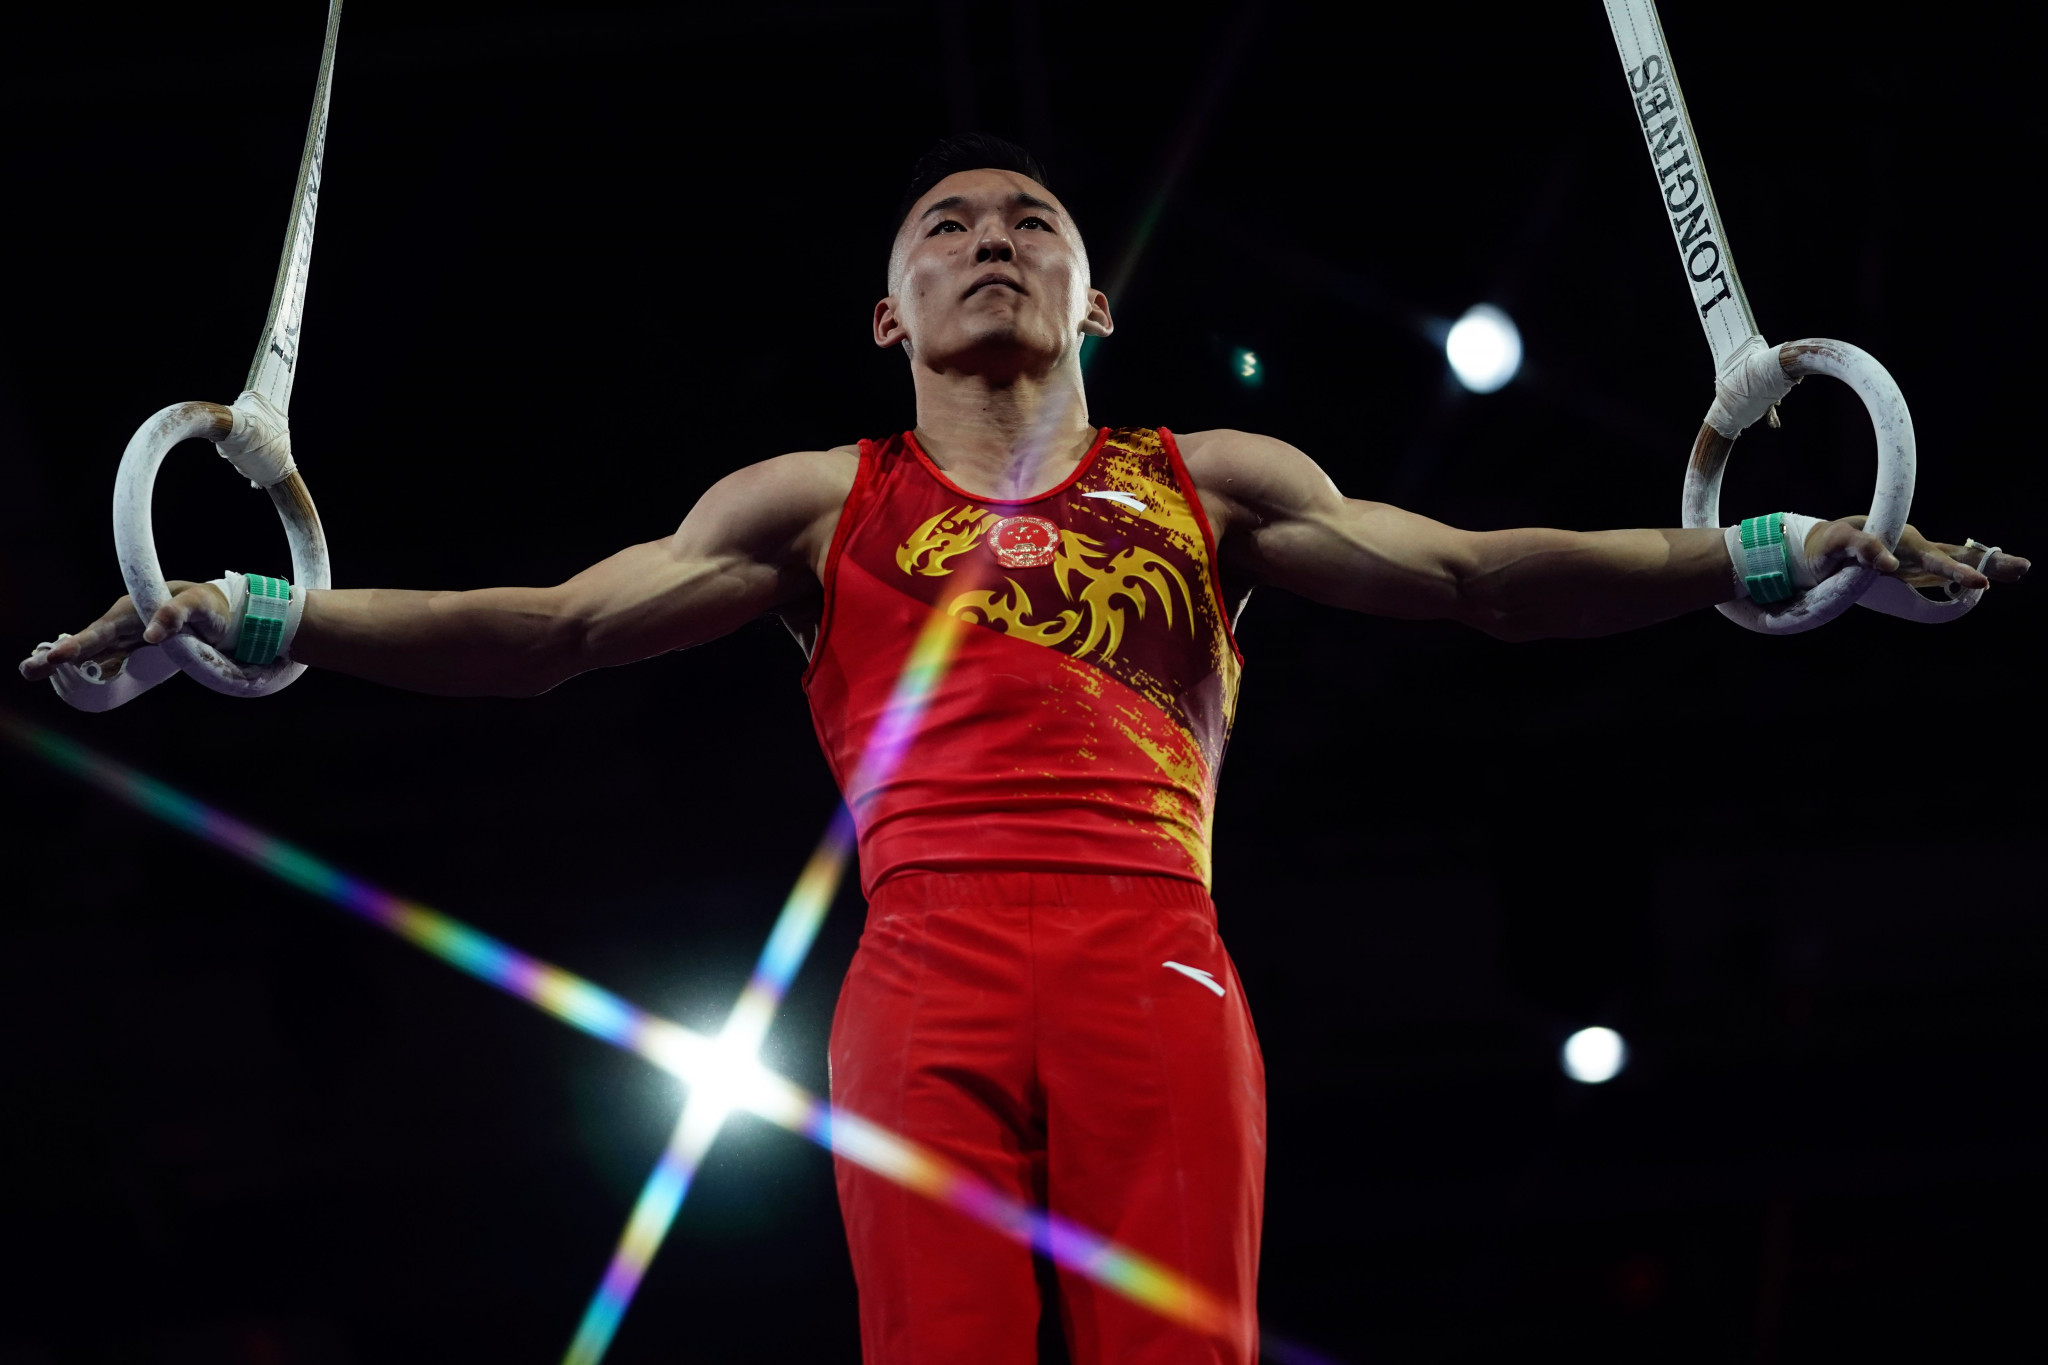 China best of the rest as Russians set bar at FIG Artistic Gymnastics World Championships